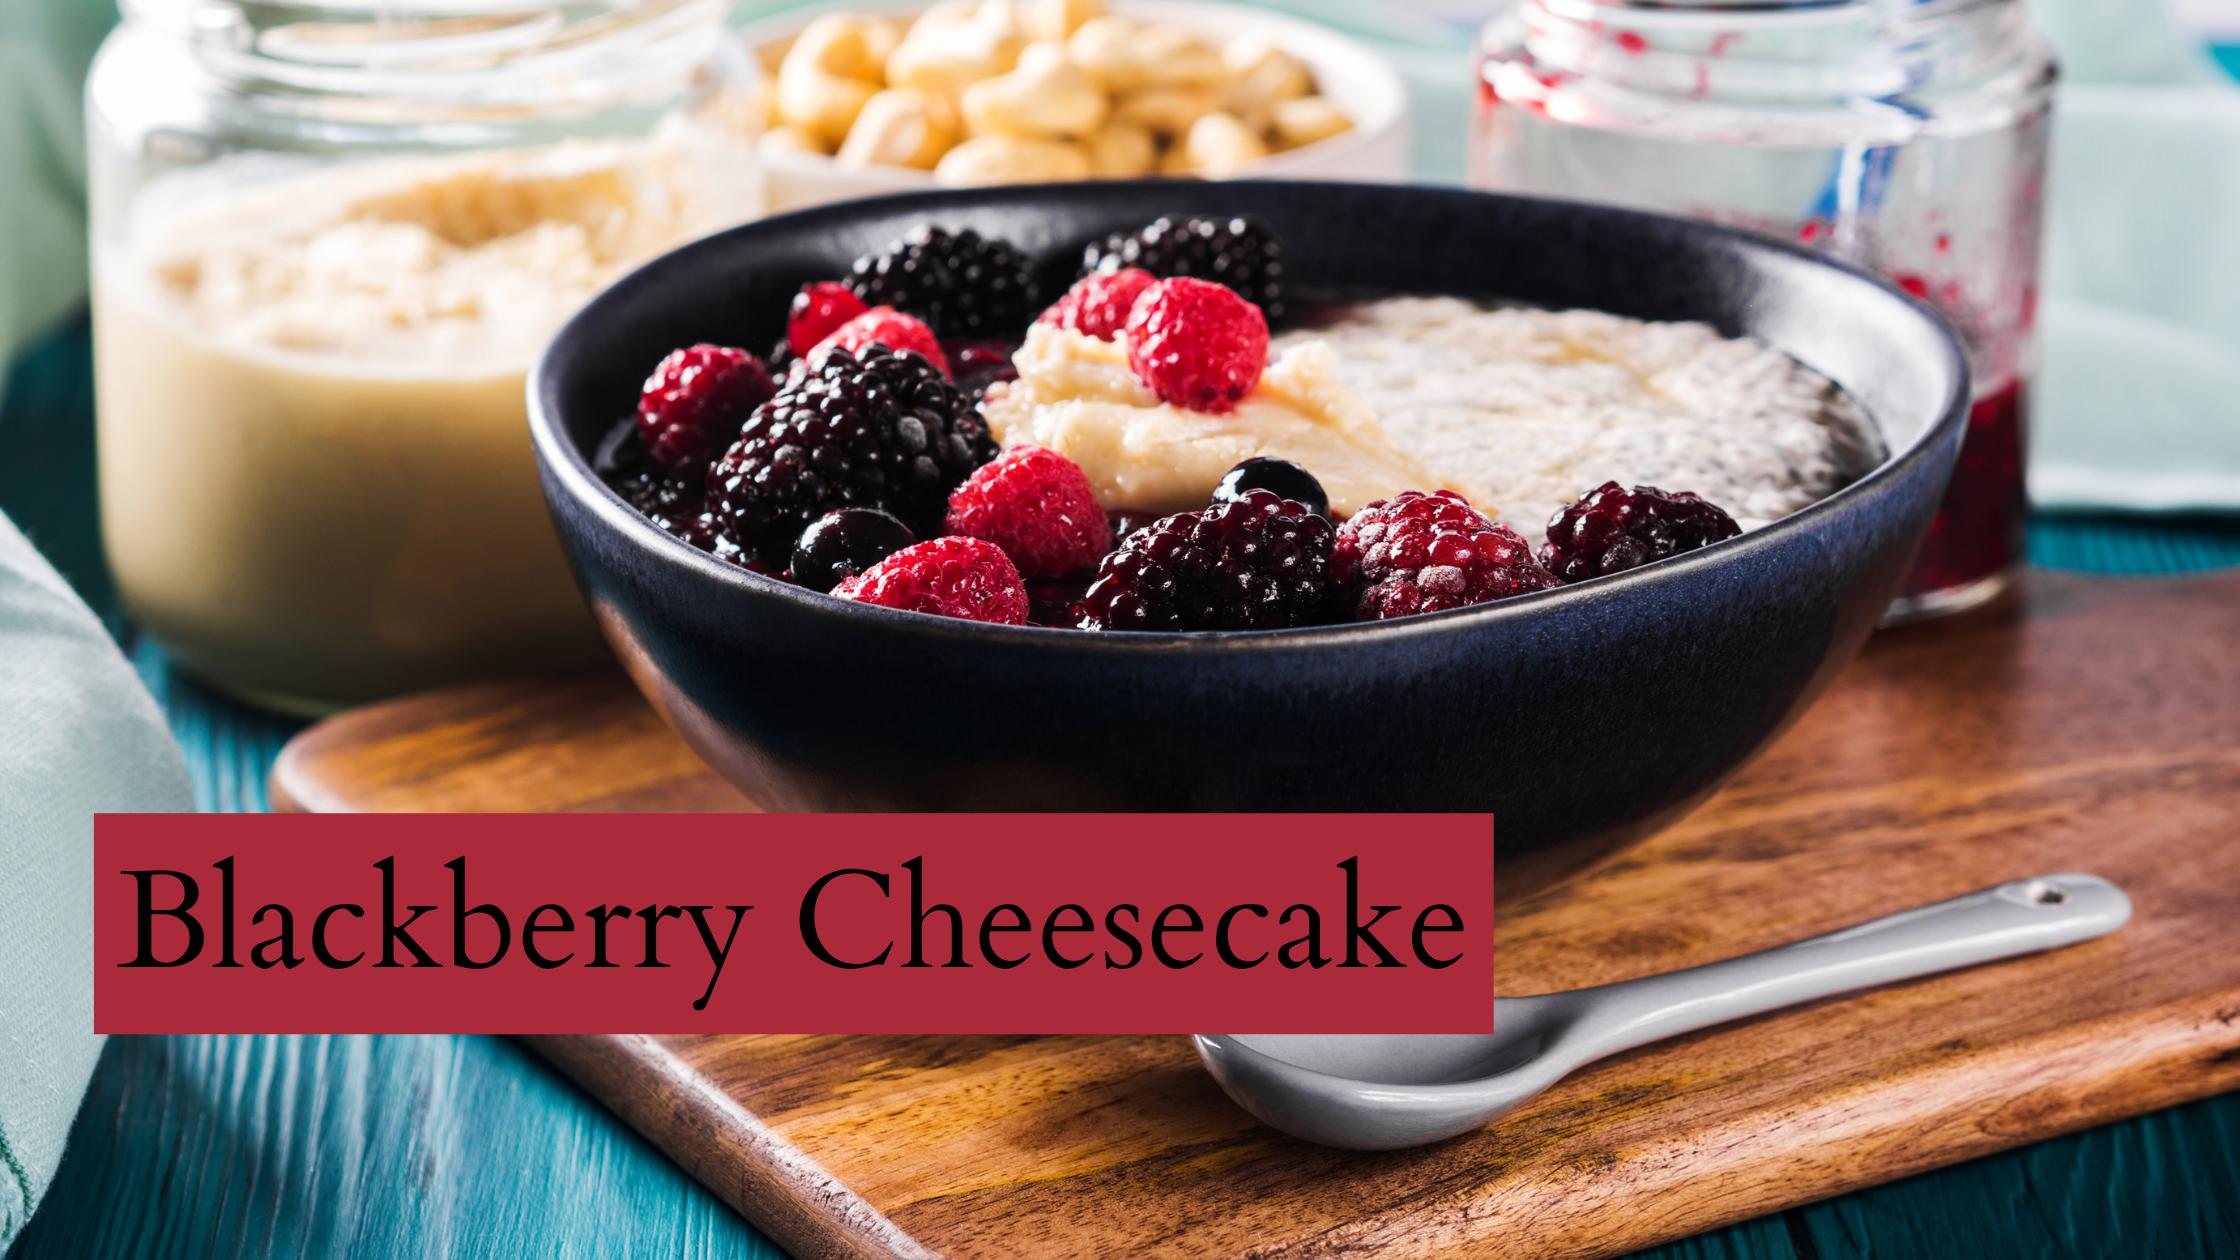 Top 5 Overnight Oats Recipes: Blackberry Cheesecake